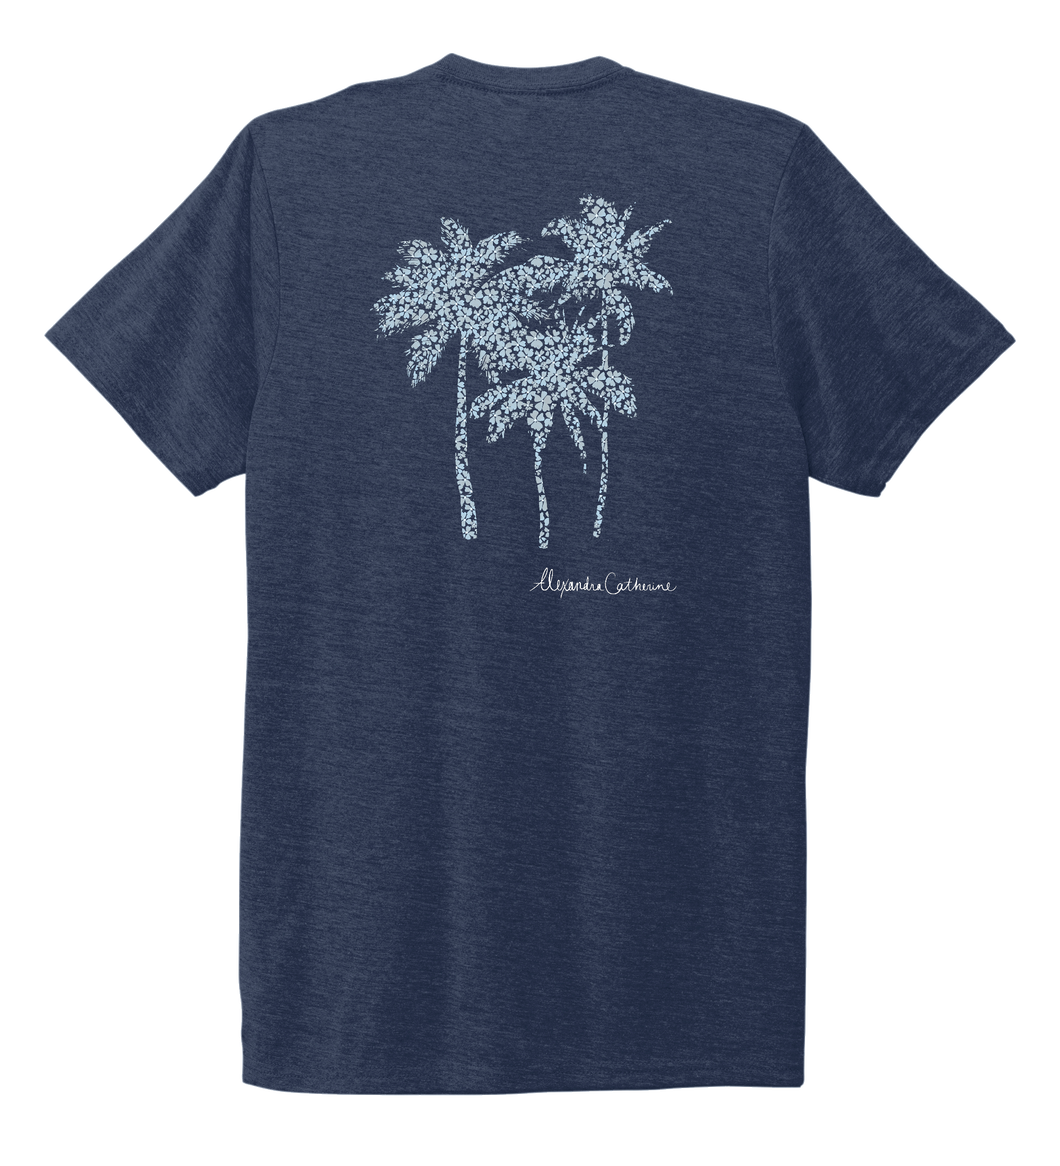 Alexandra Catherine, Palm Trees, Unisex Crew Neck T-shirt in Deep Sea Blue